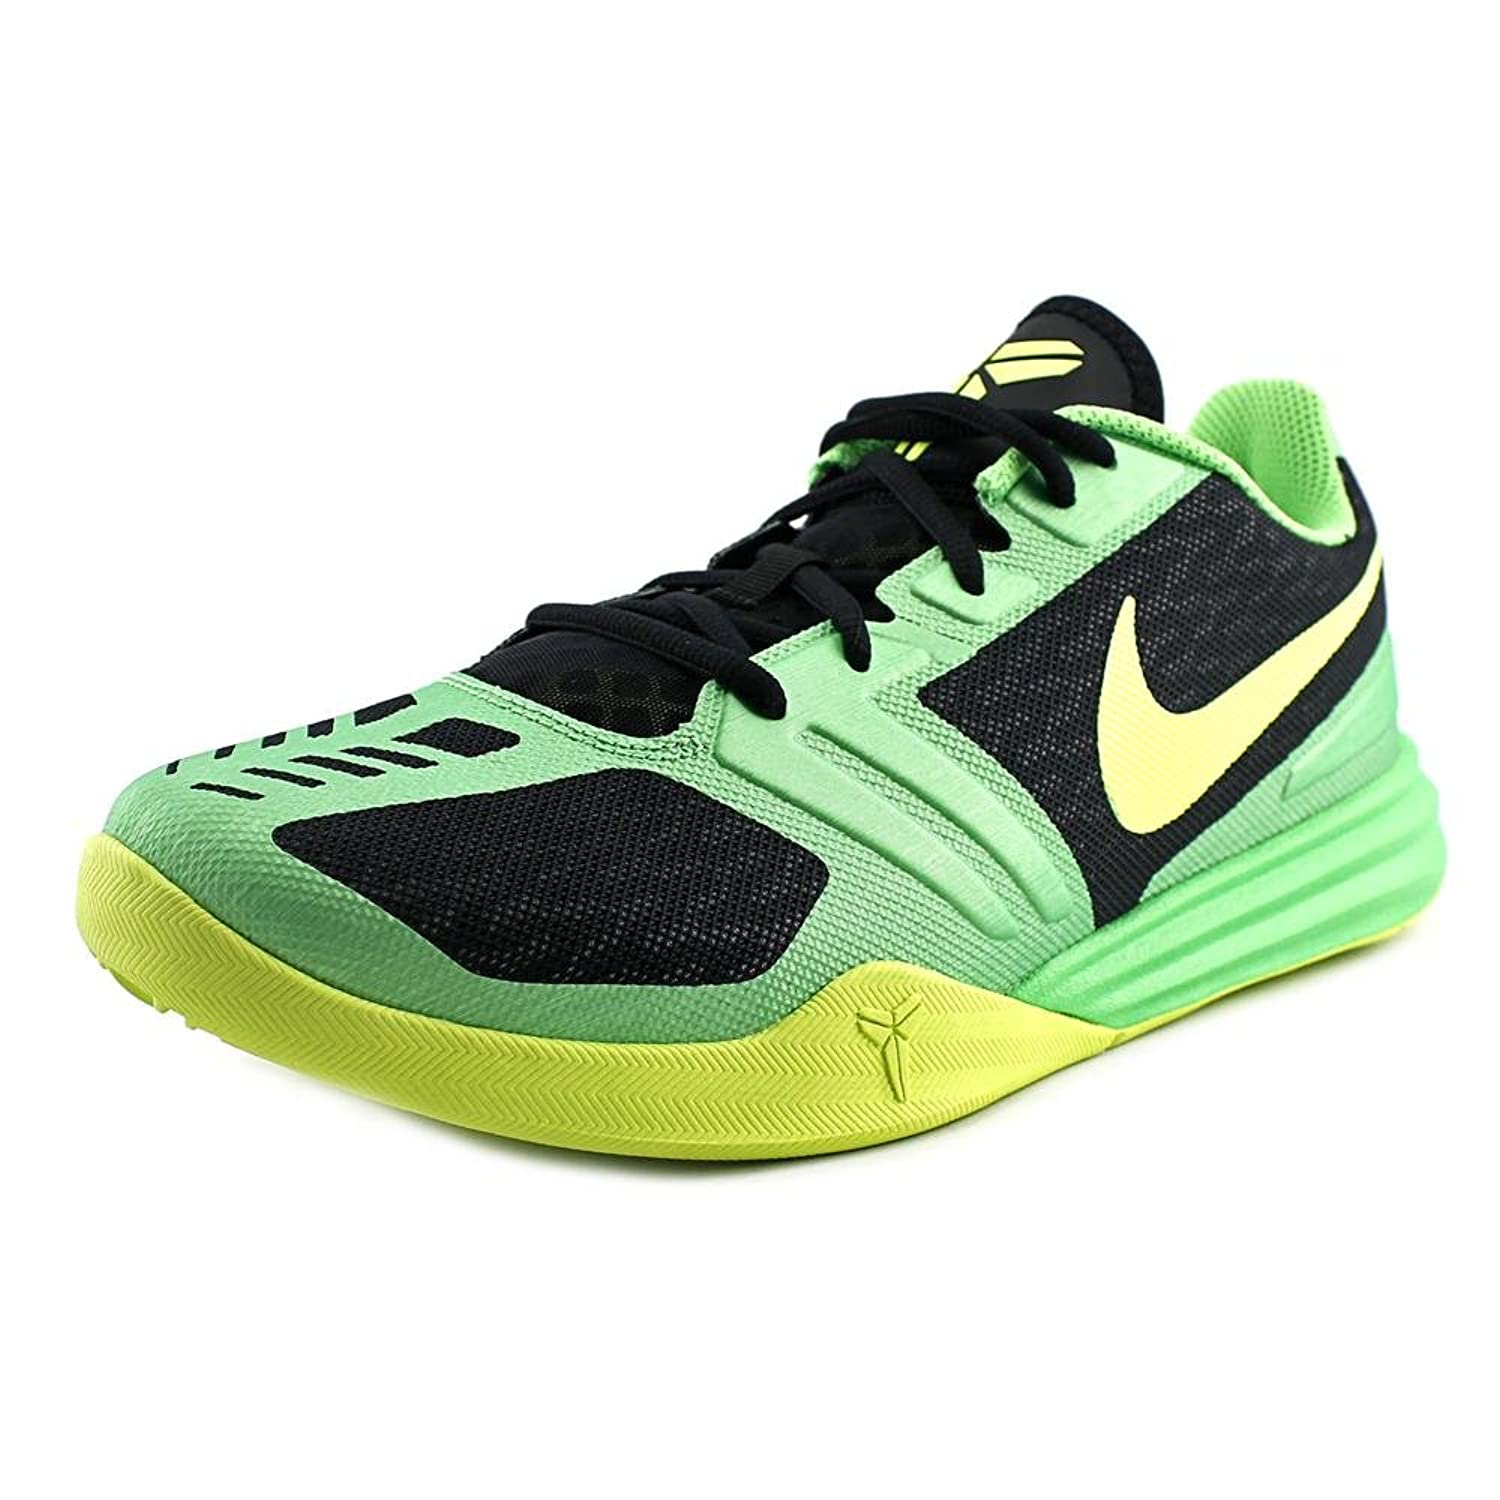 baede48b84c2 nike kobe mentality mens basketball trainers 704942 sneakers shoes  Amazon. co.uk